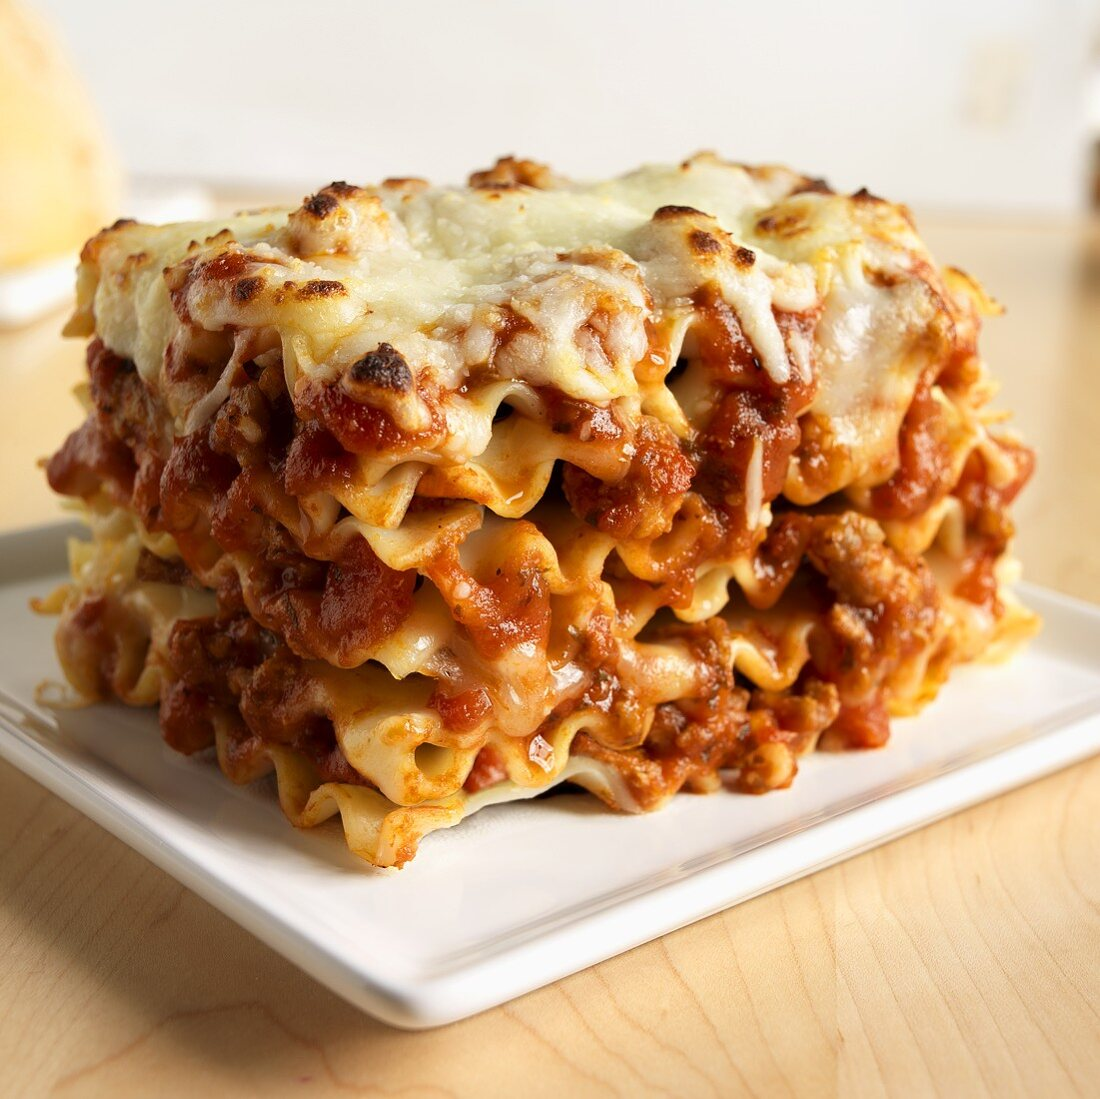 Lasagne al forno (Pasta bake with béchamel and meat sauce)